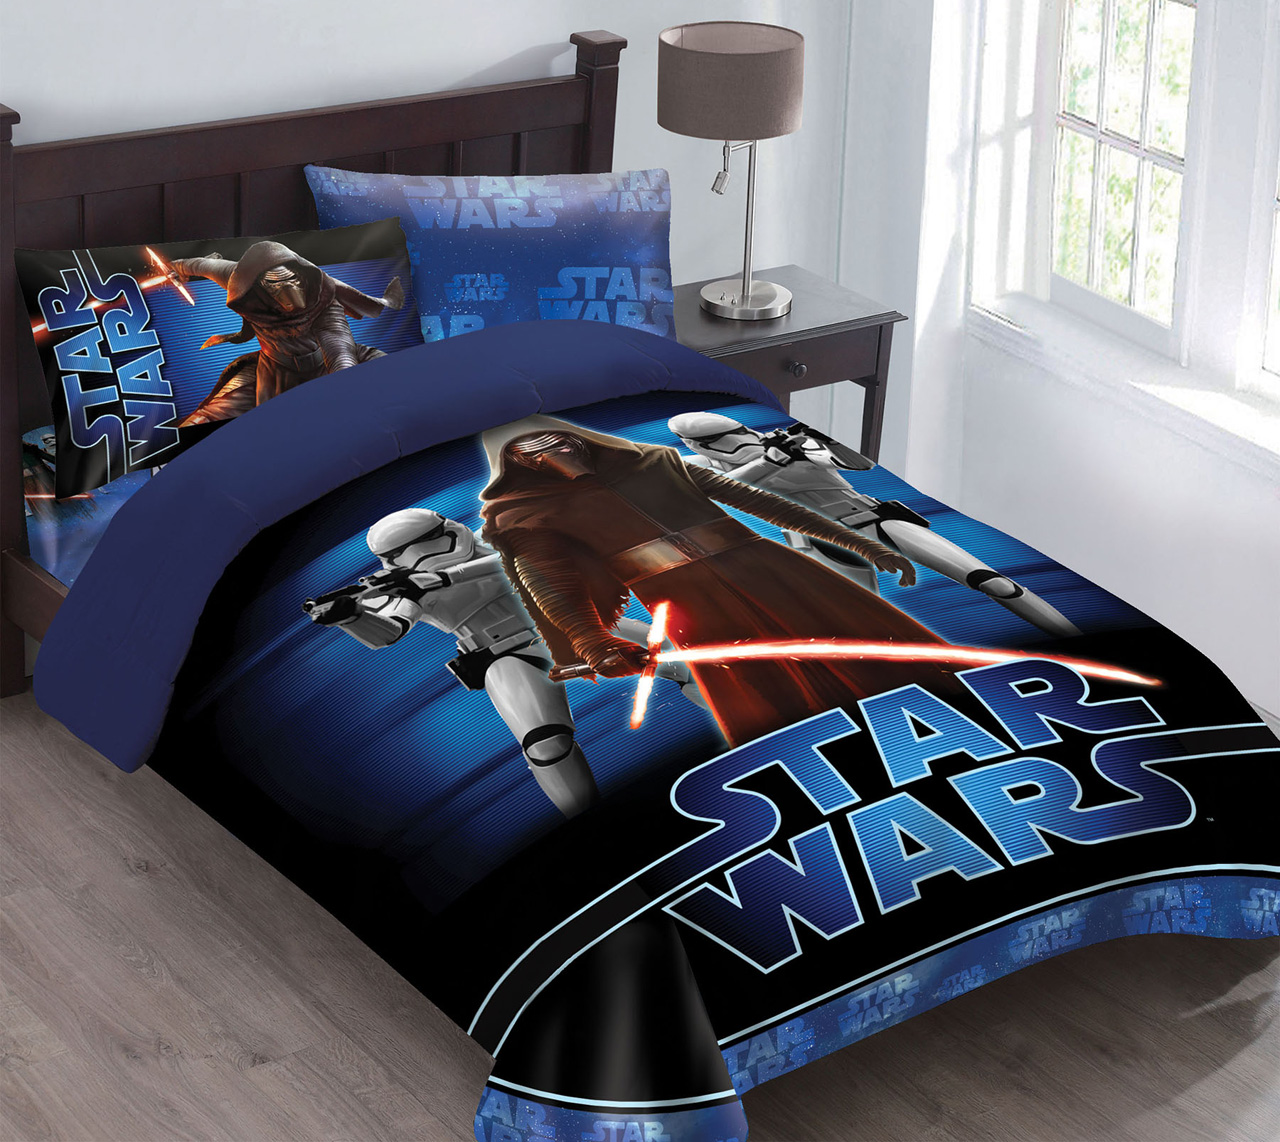 Attractive Kinglinen Star Wars The Force Awakens Comforter Set With Fitted Sheet, Full